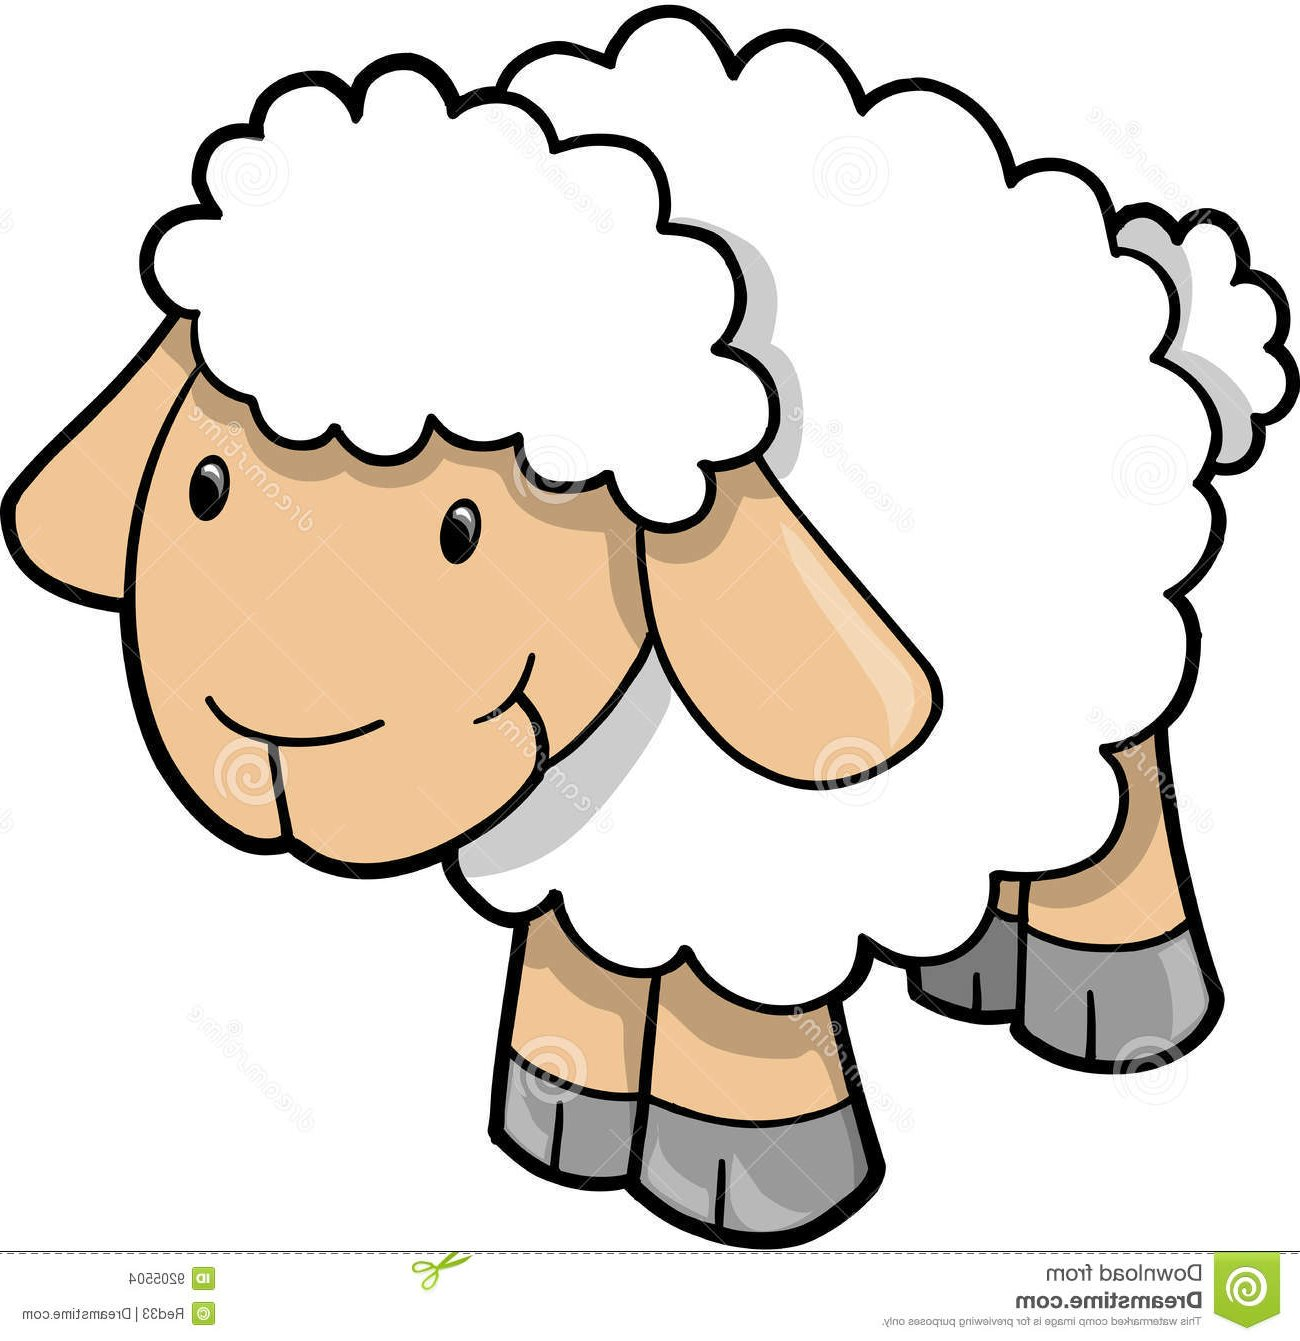 Clipart Sheep Pictures.